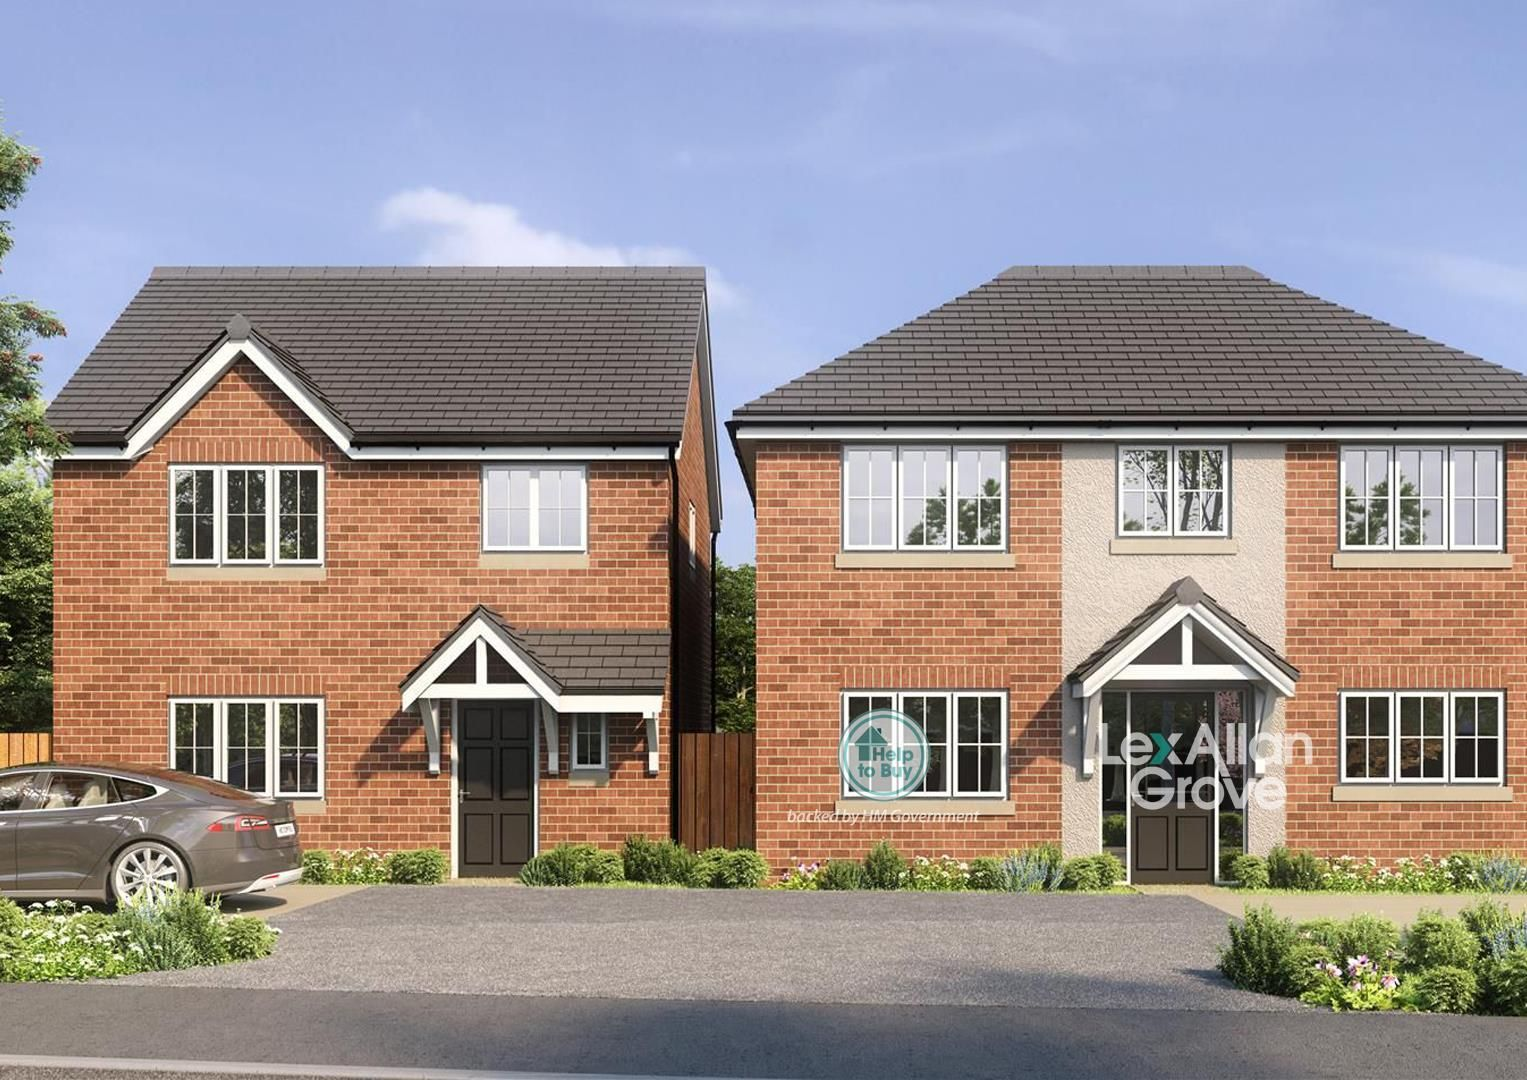 3 bed detached for sale, B63